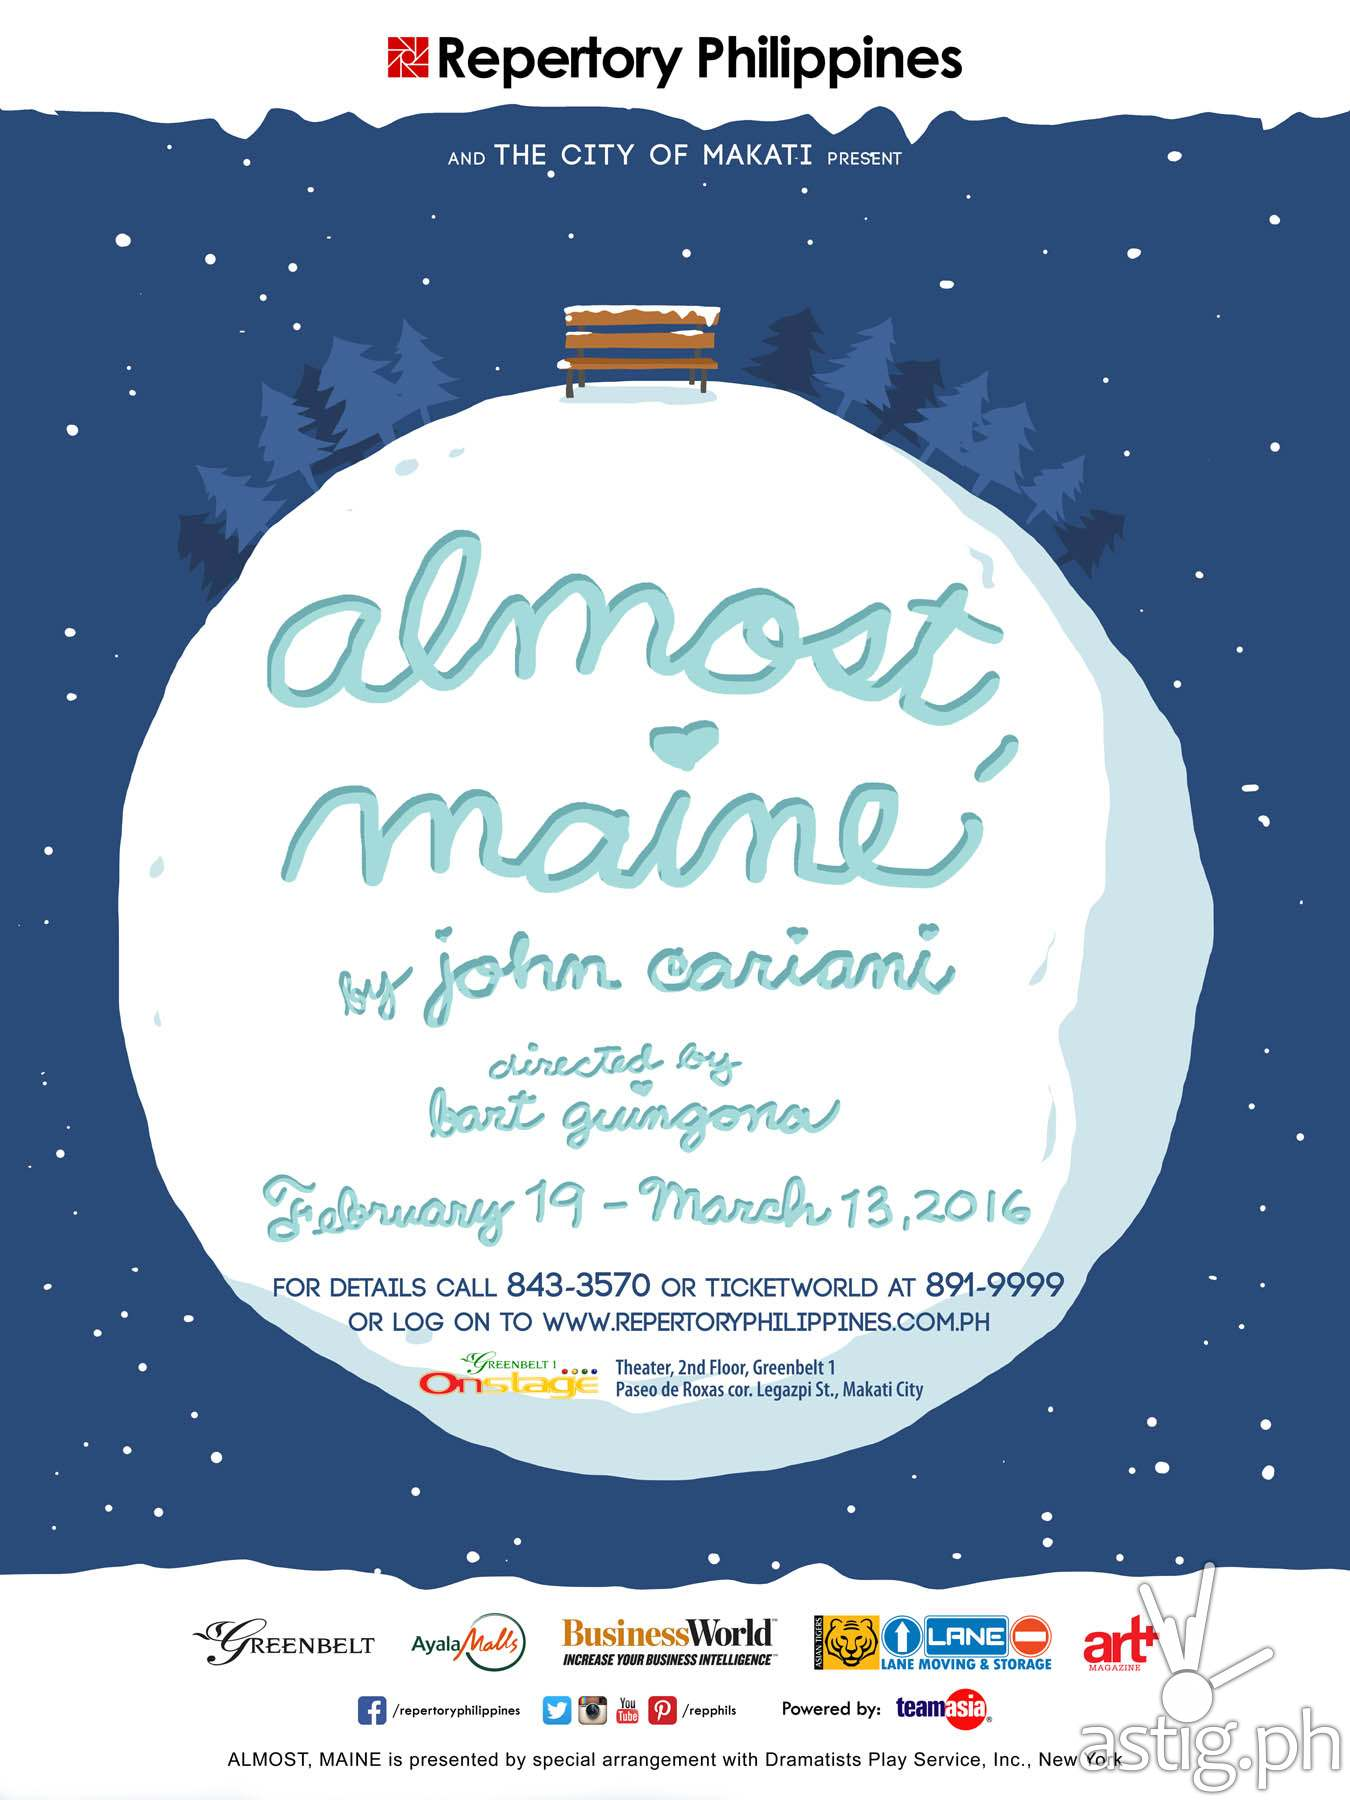 Almost Maine by Repertory Philippines